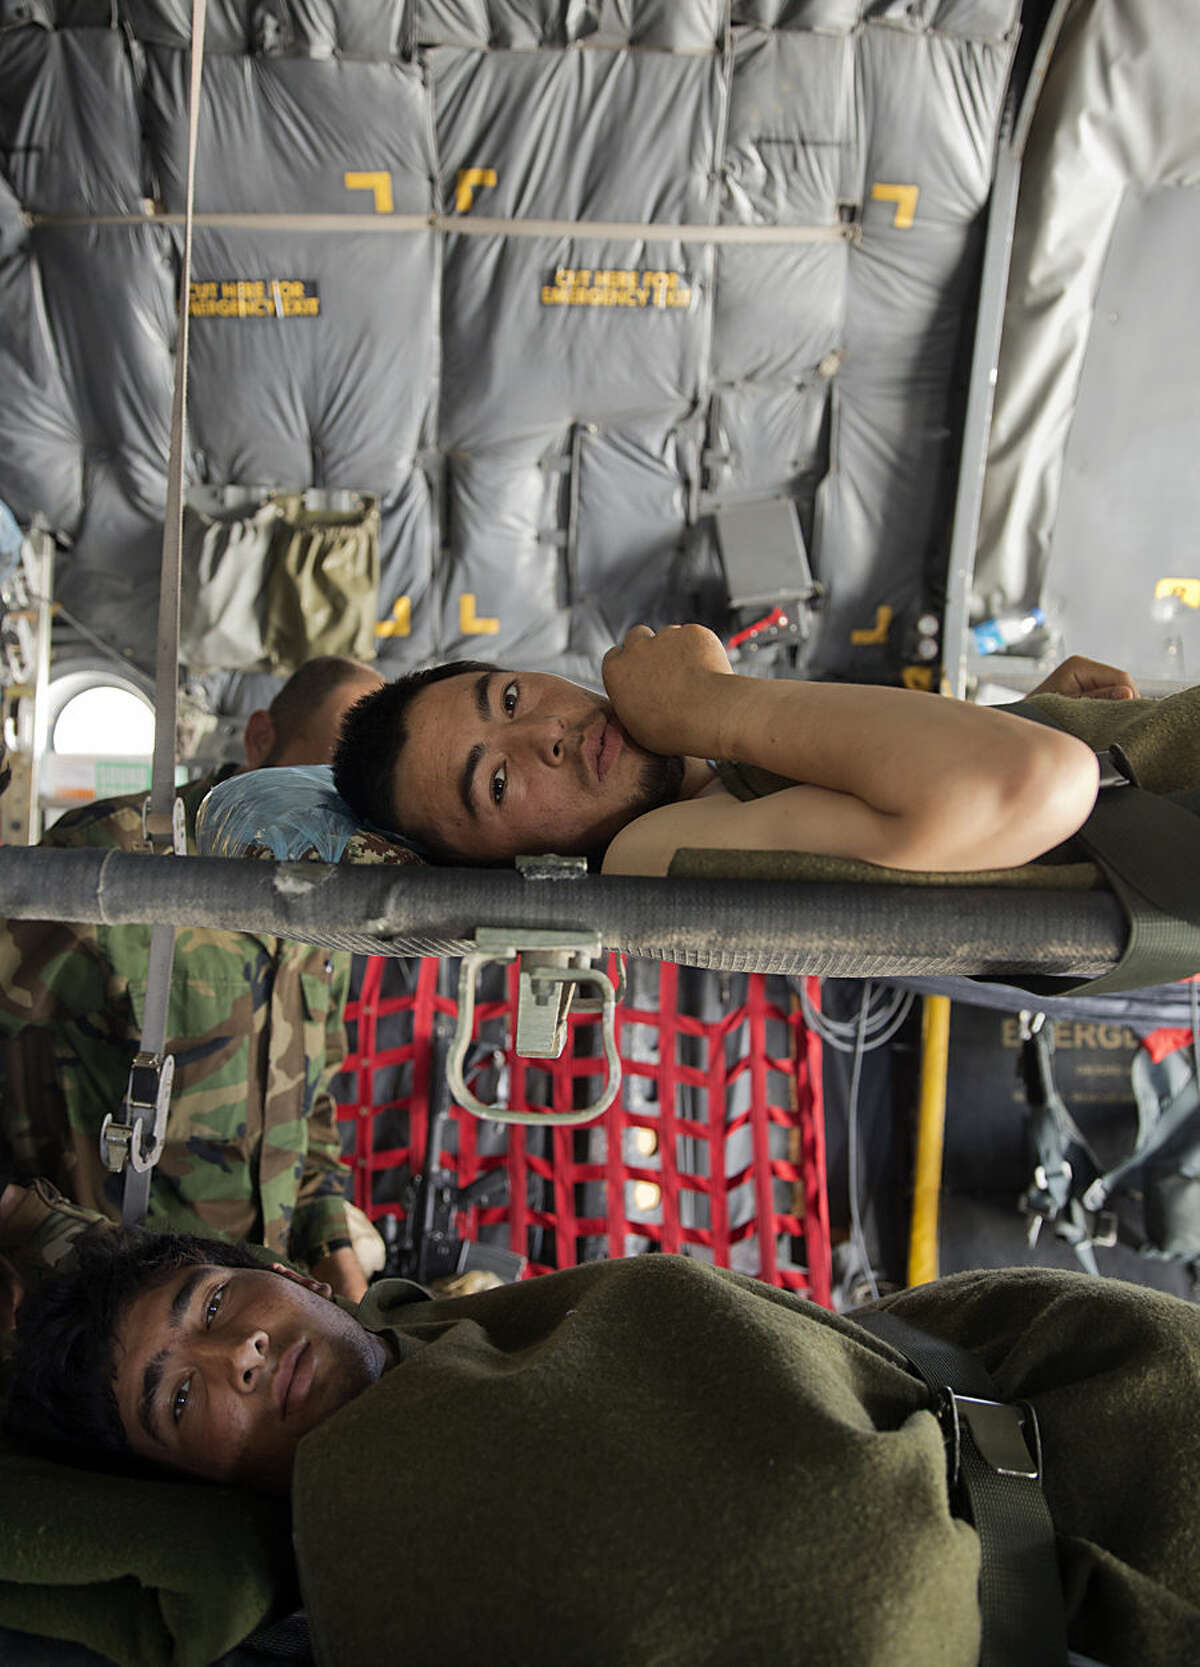 Wounded Afghanistan's National Army soldiers lie on cots, inside a C-130 Hercules aircraft, that belongs to the Afghan National Army, at Kandahar Air Field, Afghanistan, Tuesday, Aug. 18, 2015. Since the departure from Afghanistan last year of most international combat troops, Afghan security forces have been fighting the insurgency alone. Figures show that casualty rates are extremely high, reflecting an emboldened Taliban testing the commitment and strength of the Afghan military. (AP Photo/Massoud Hossaini)